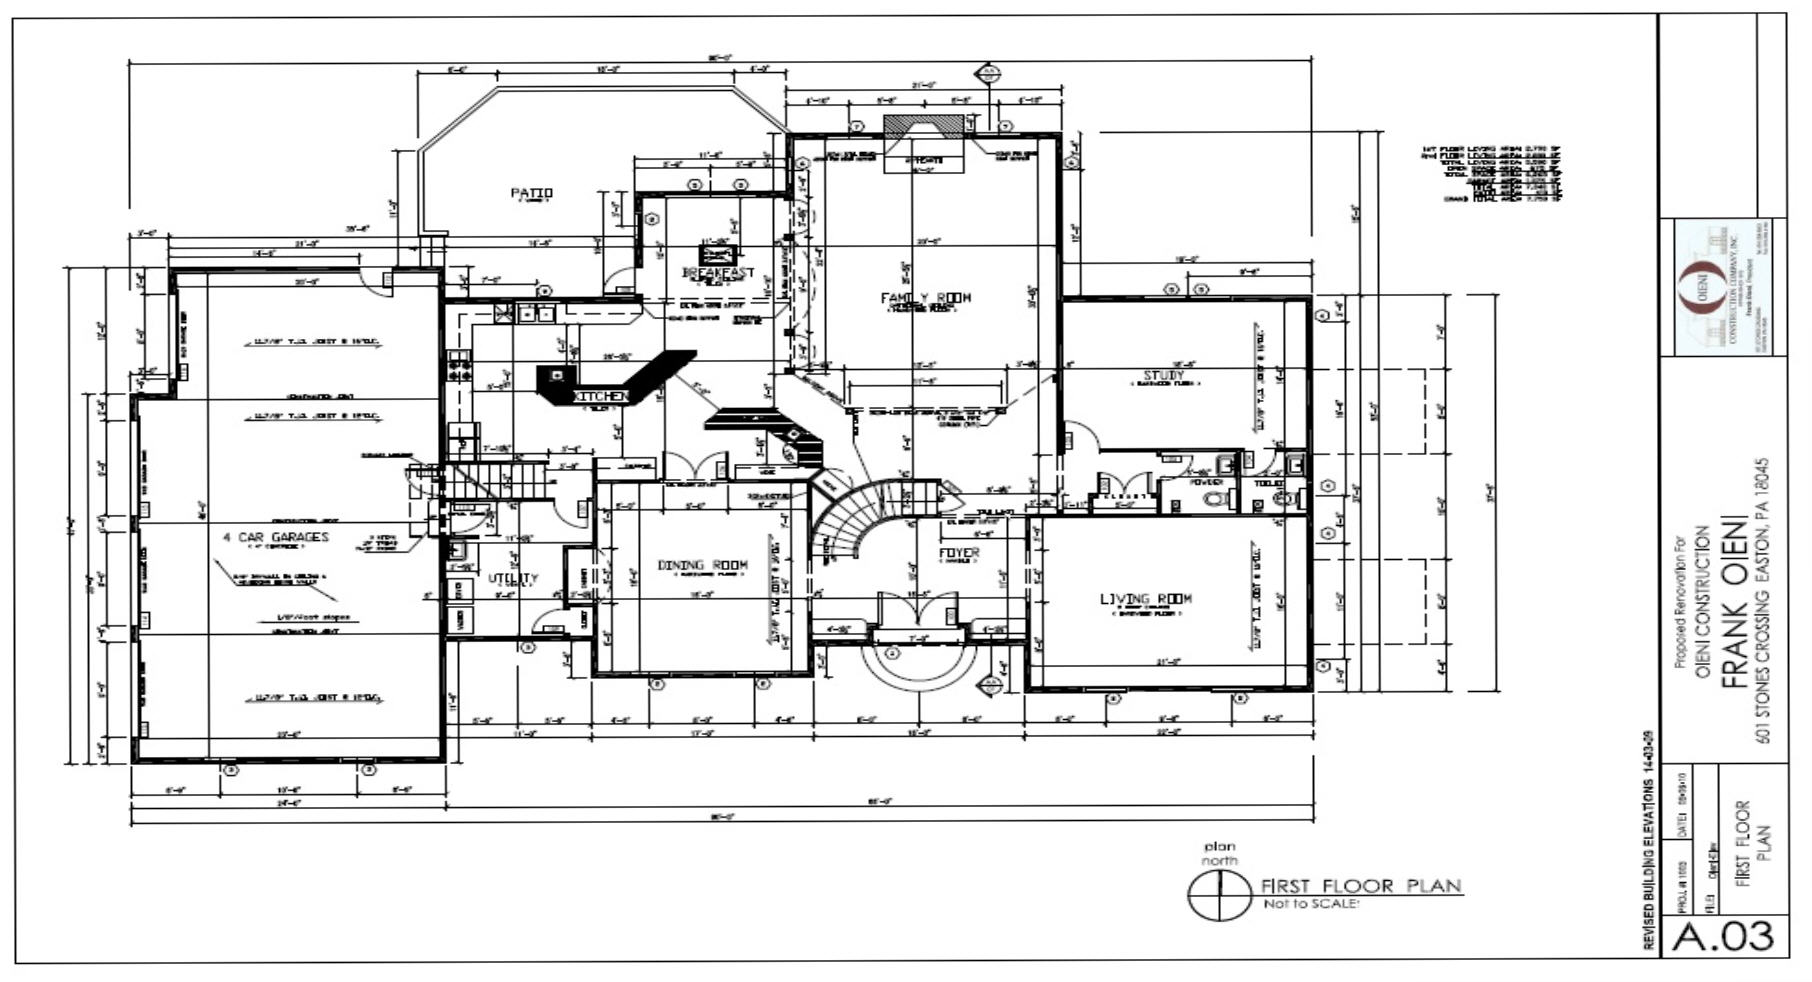 Oieni construction brodhead floor plans for Floor plans with photos